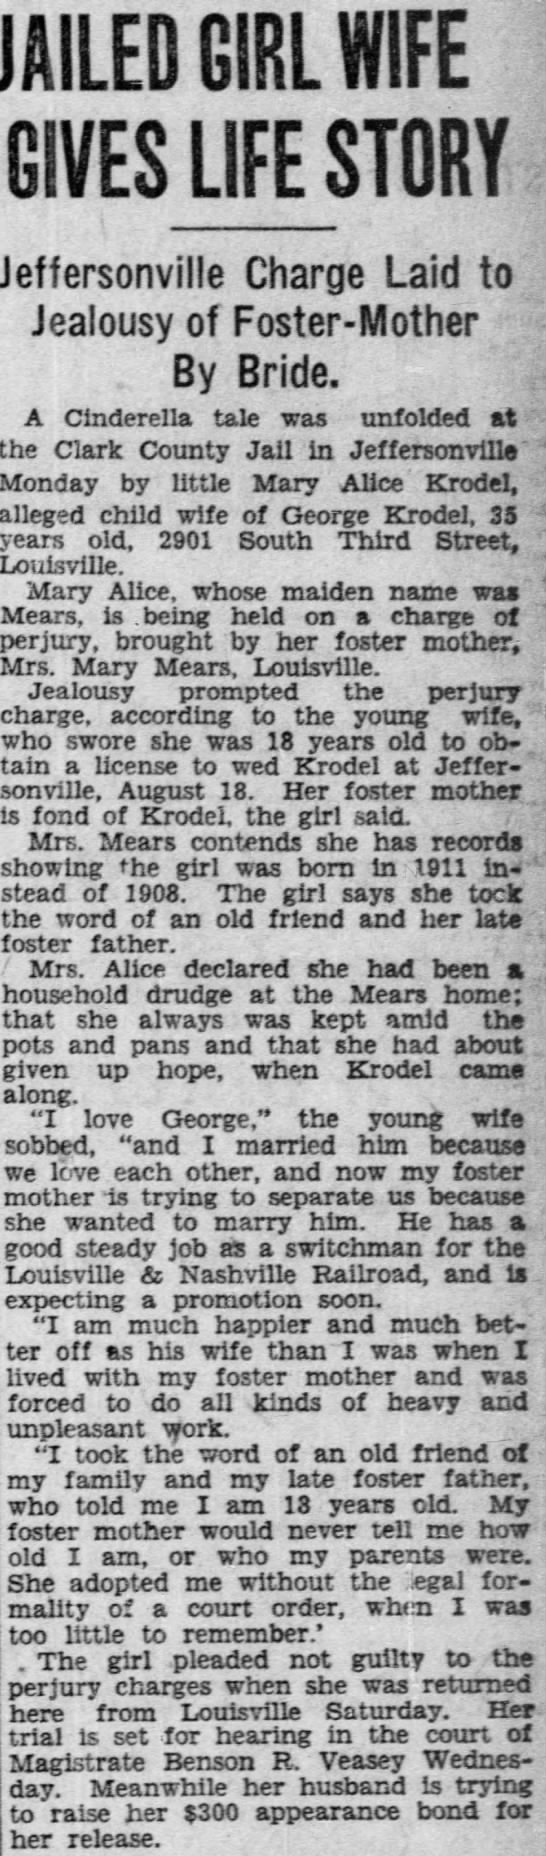 Mary Alice Mears Krodel adopted daughter of James W. and Mary Blandford Mears